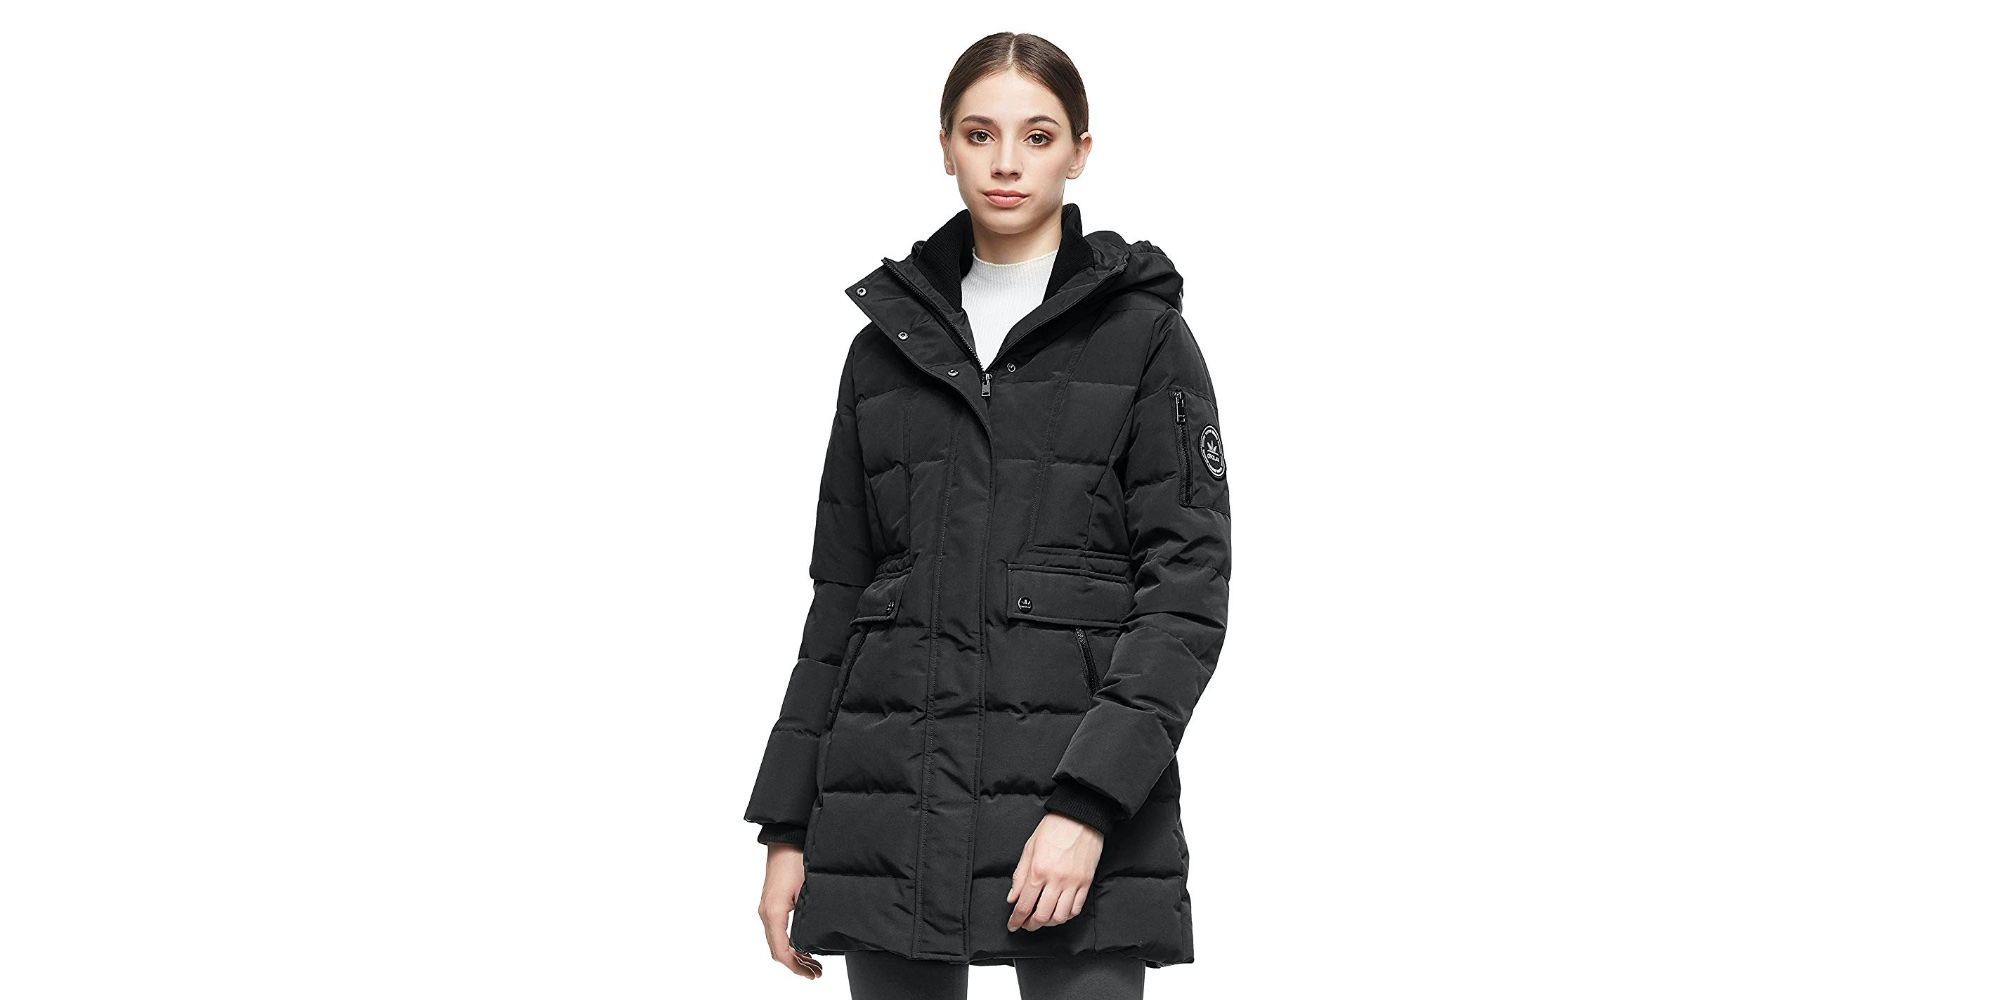 Stay warm this wanter with up to 30% off women's down jackets from under $80 - 9to5Toys